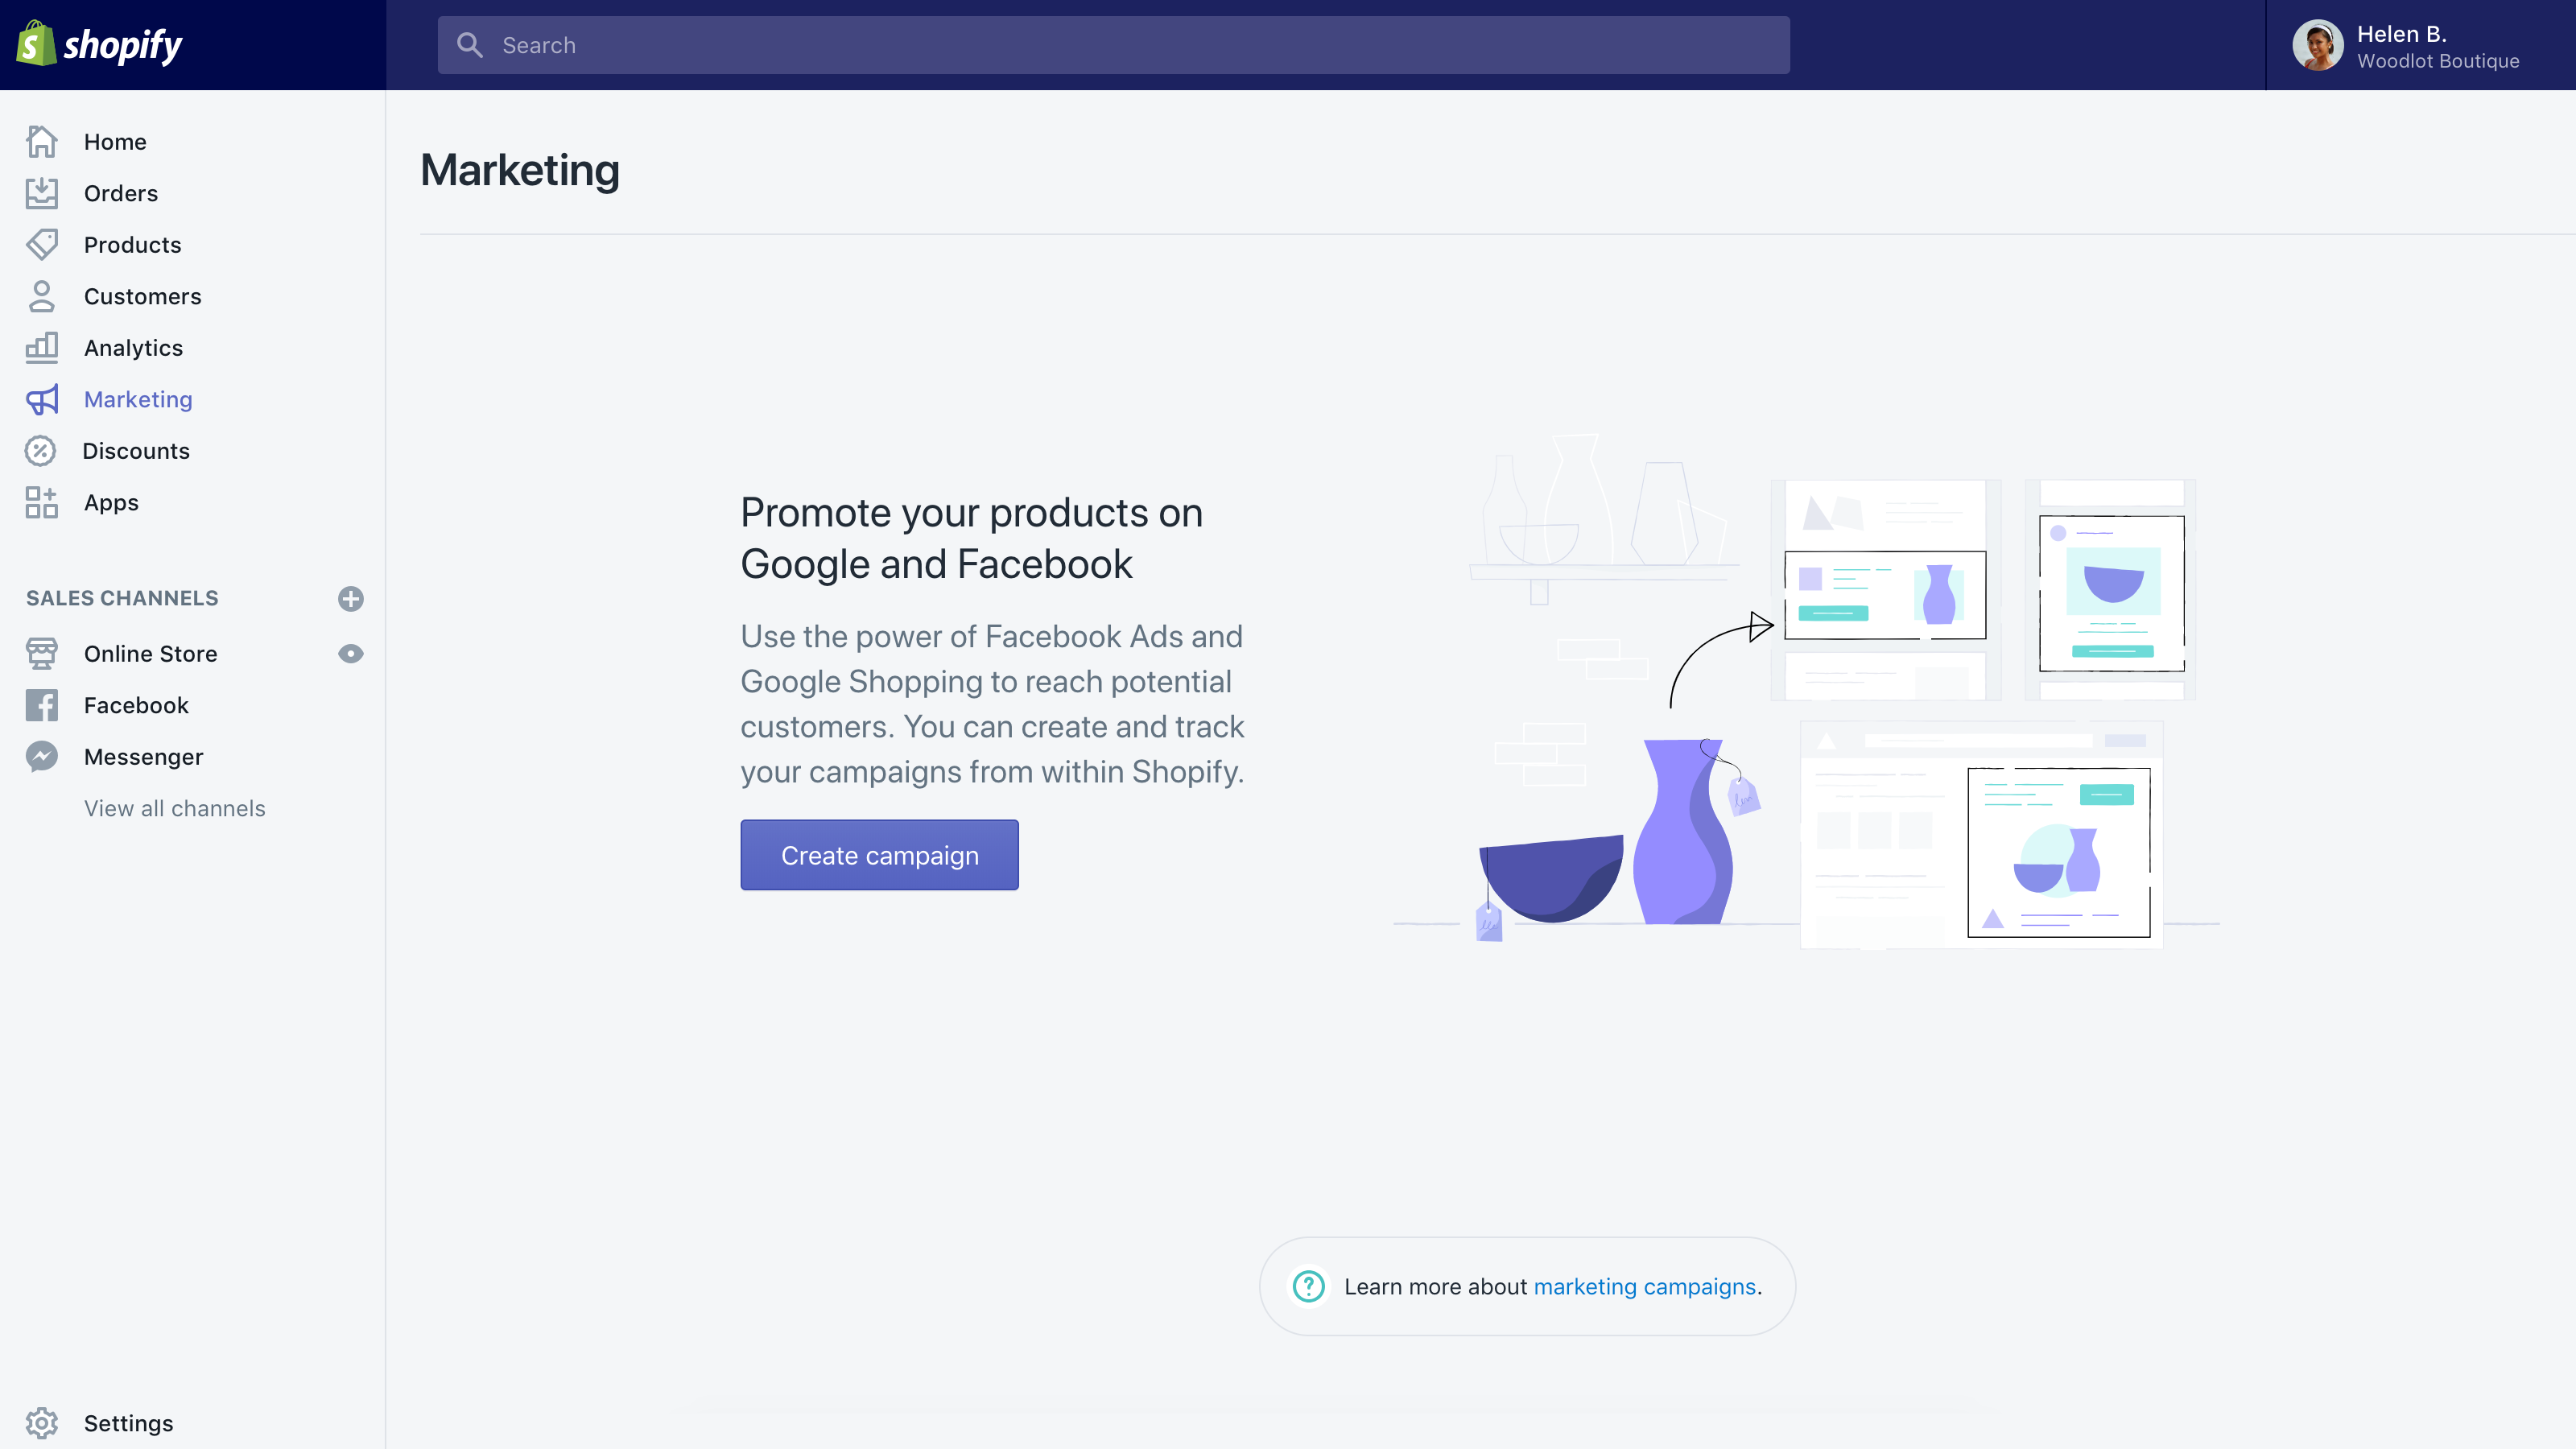 Marketing in Shopify: Streamline your marketing